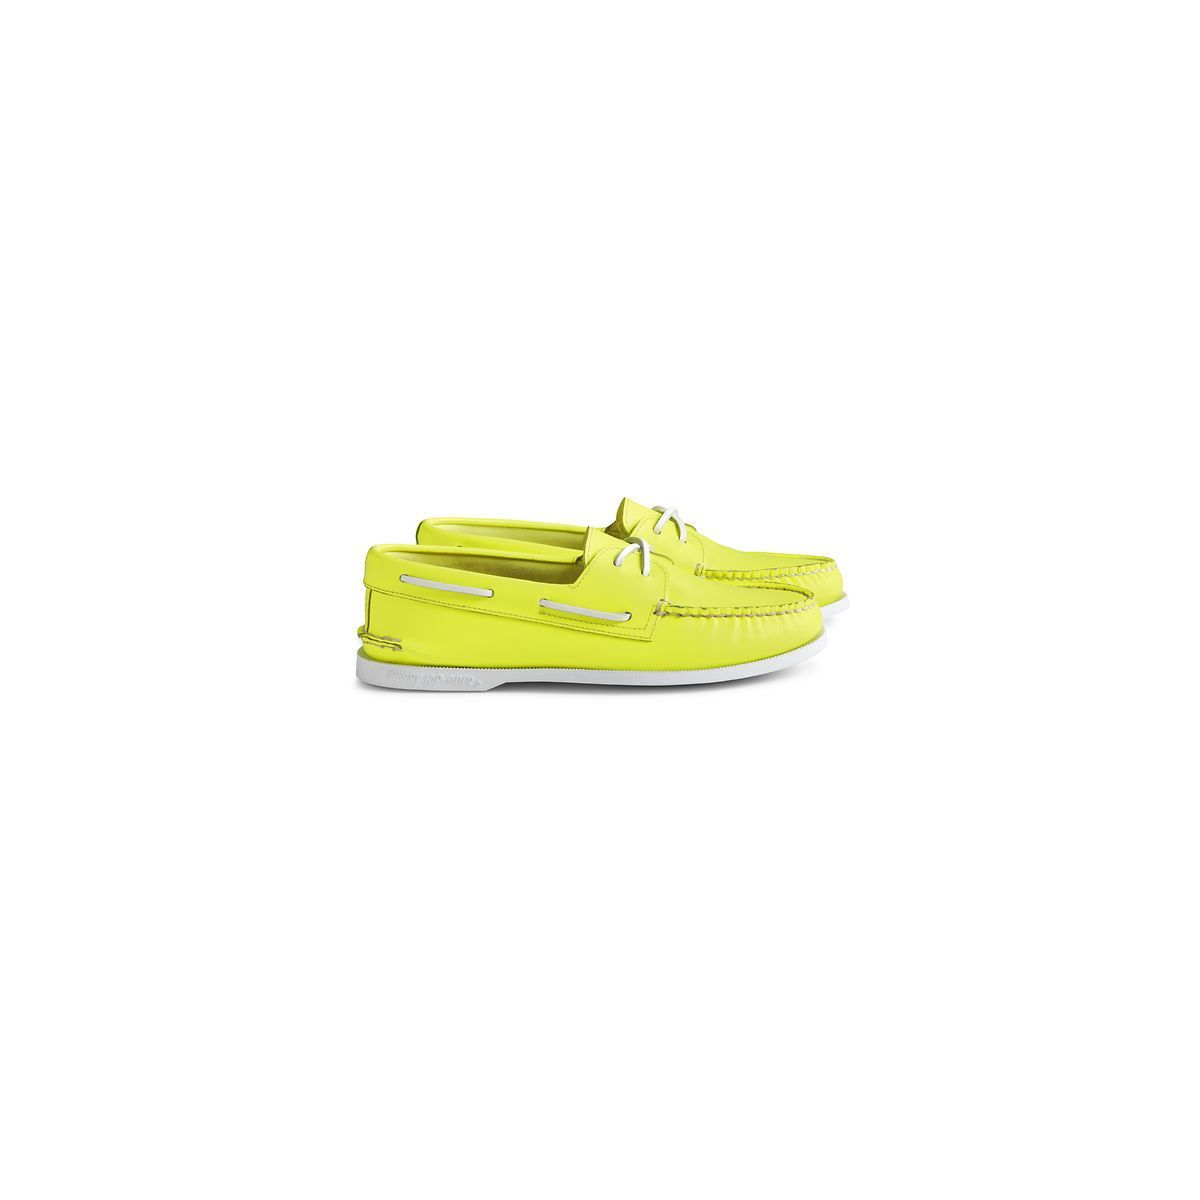 Unisex Cloud Authentic Original Neon Boat Shoe Yellow Source by sperry yellow